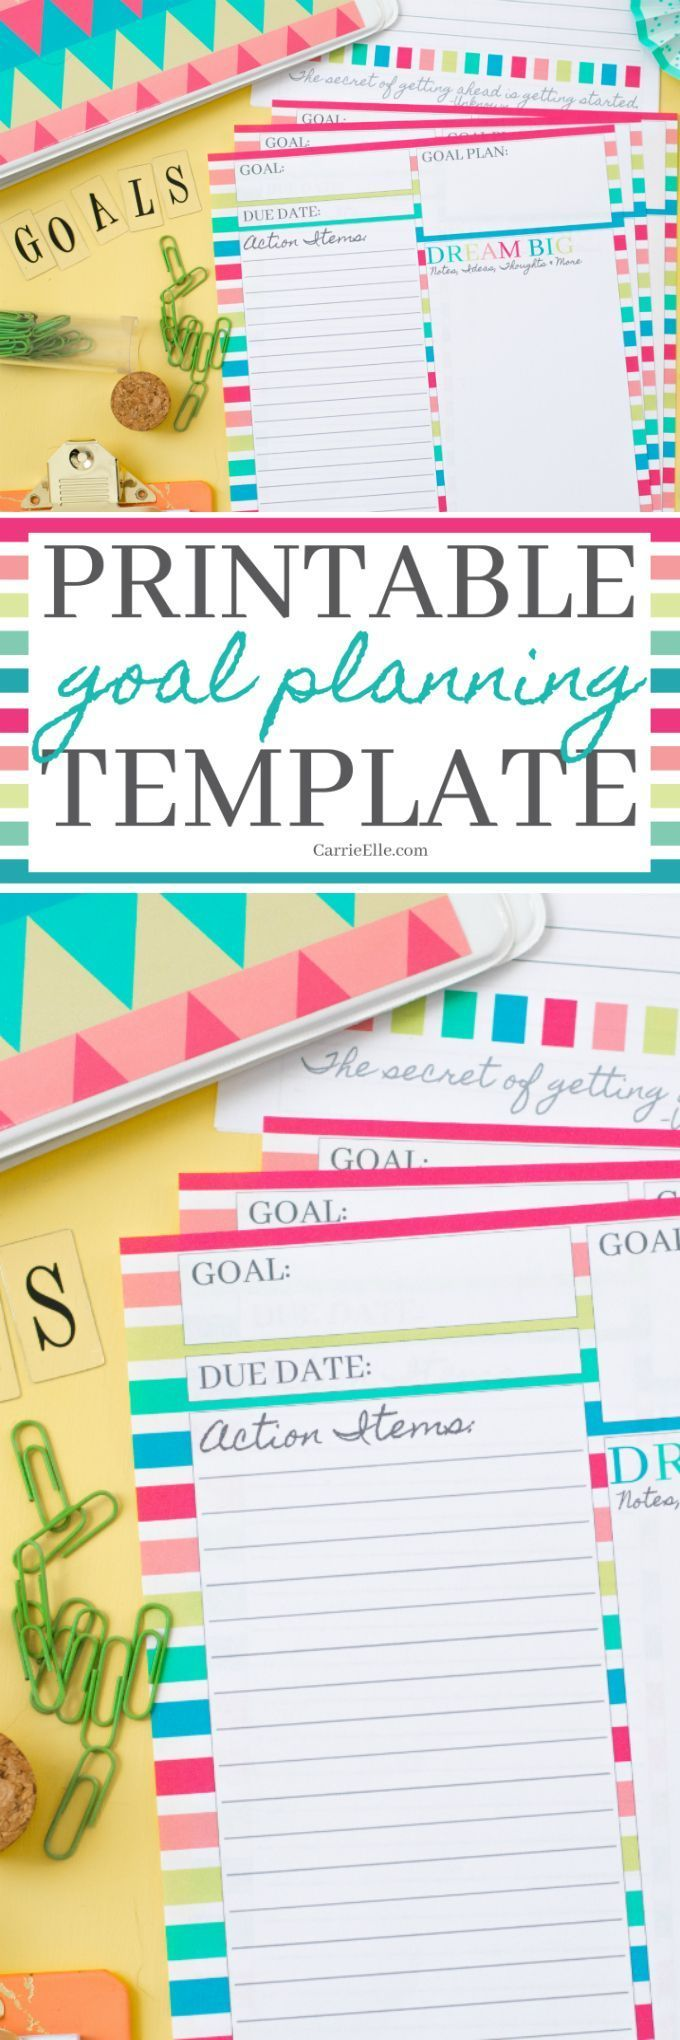 Free Printable Goal Planning Template - this is a great way to lay out your goal with clear action items!